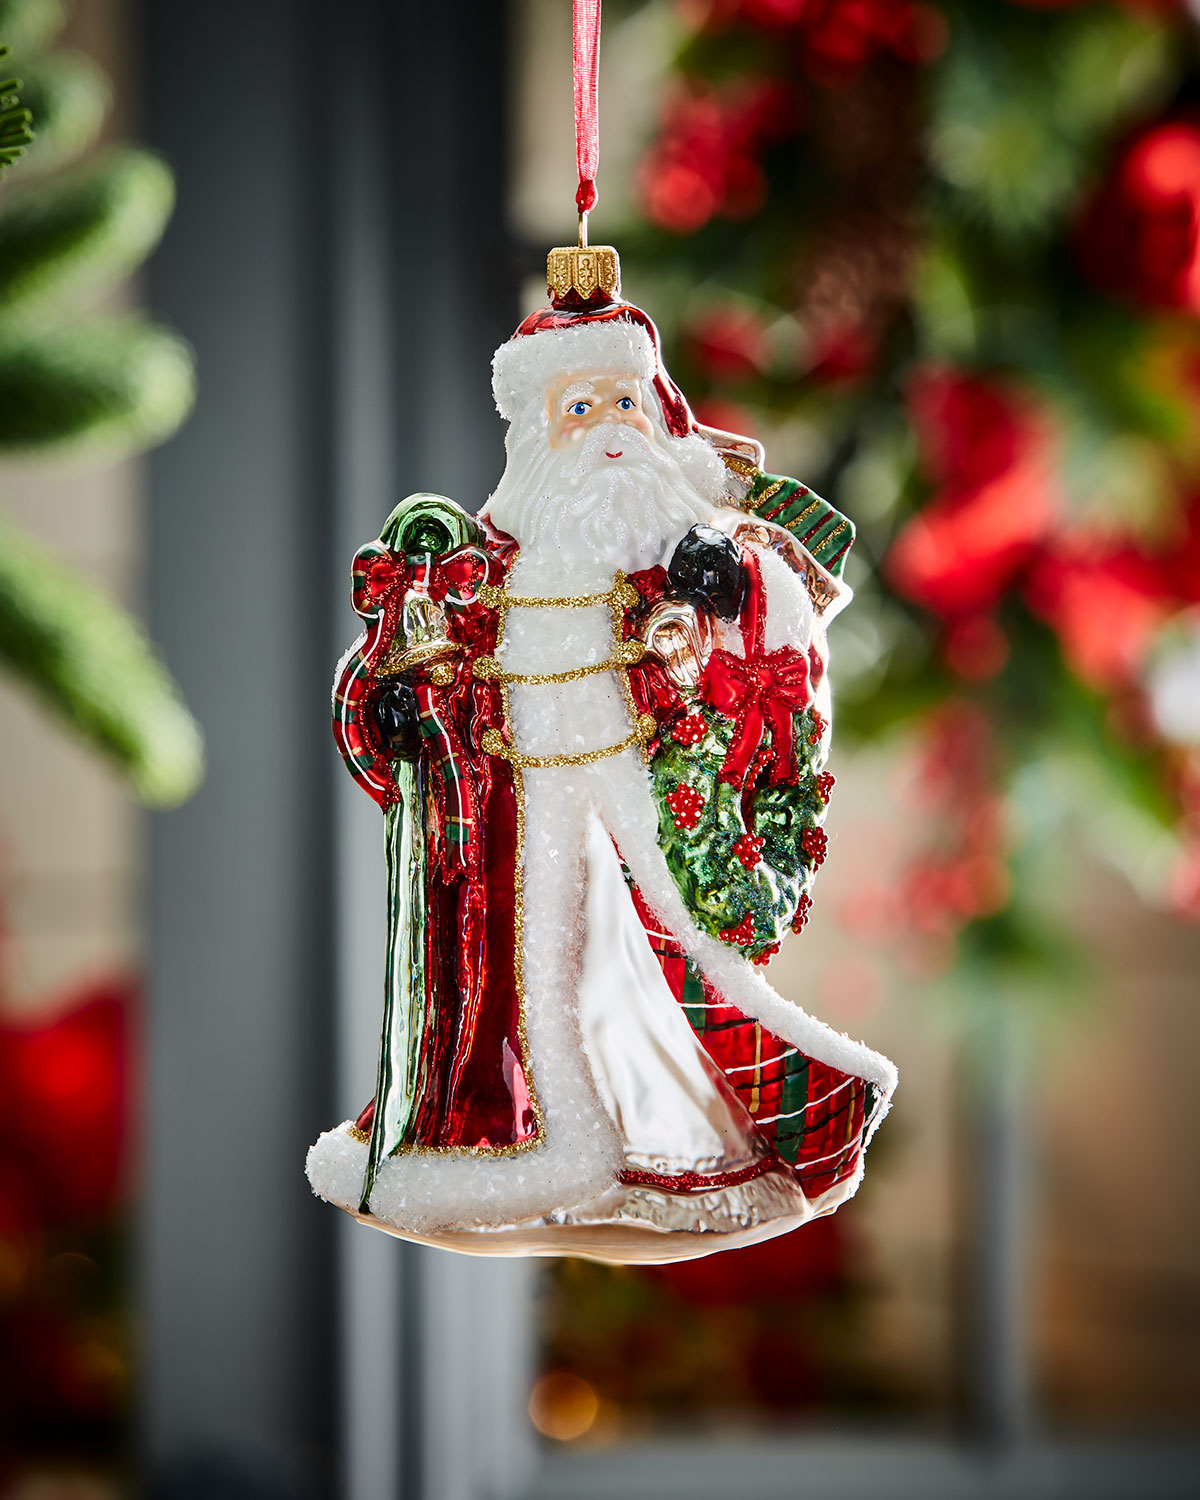 Wedding Gift Stores Nyc: Santa With Wreath Christmas Ornament